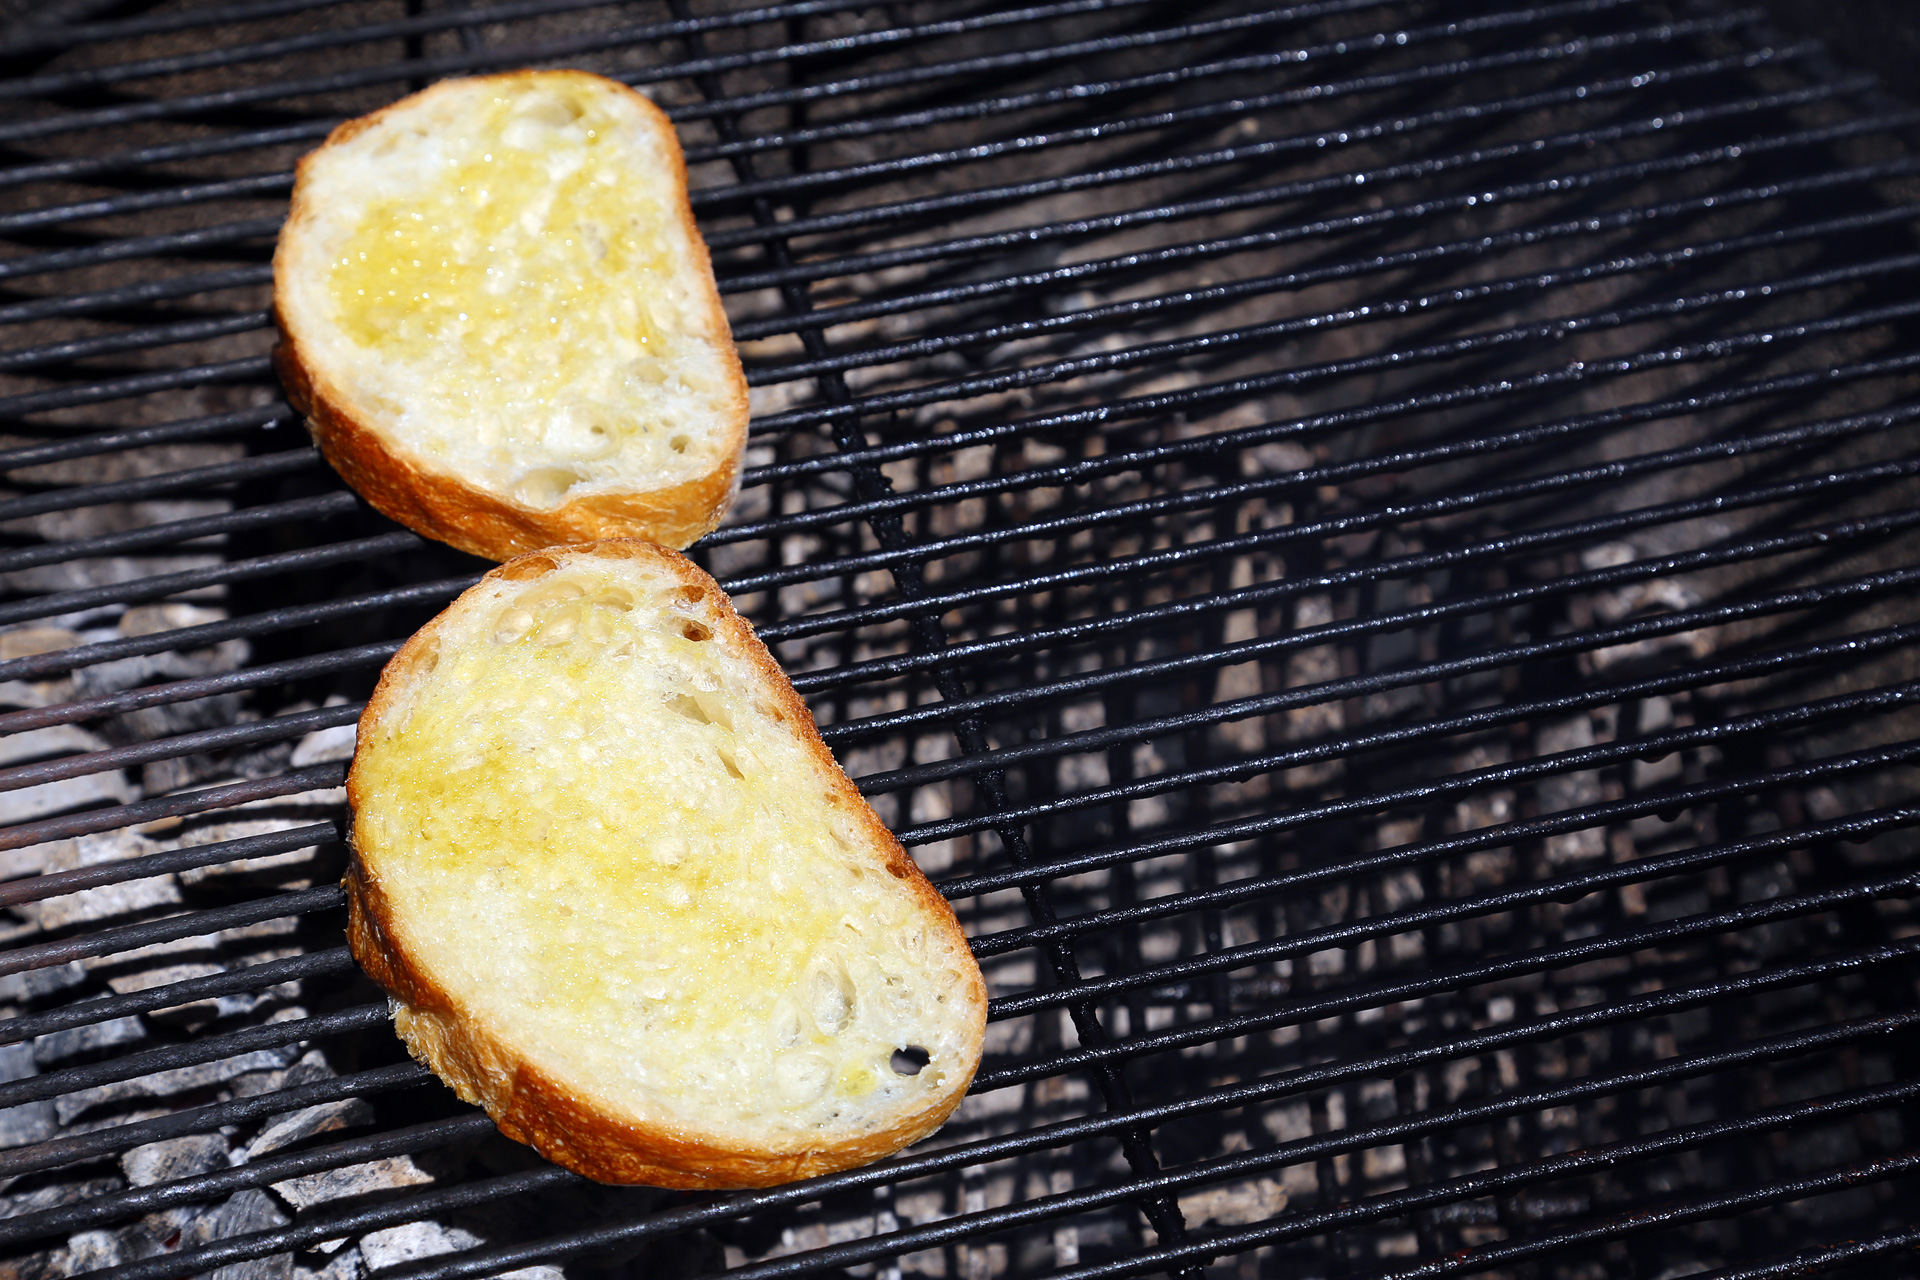 Brush both sides of each bread slice with a little olive oil then place over the fire, turning once, until the bread is toasted and nicely grill-marked.